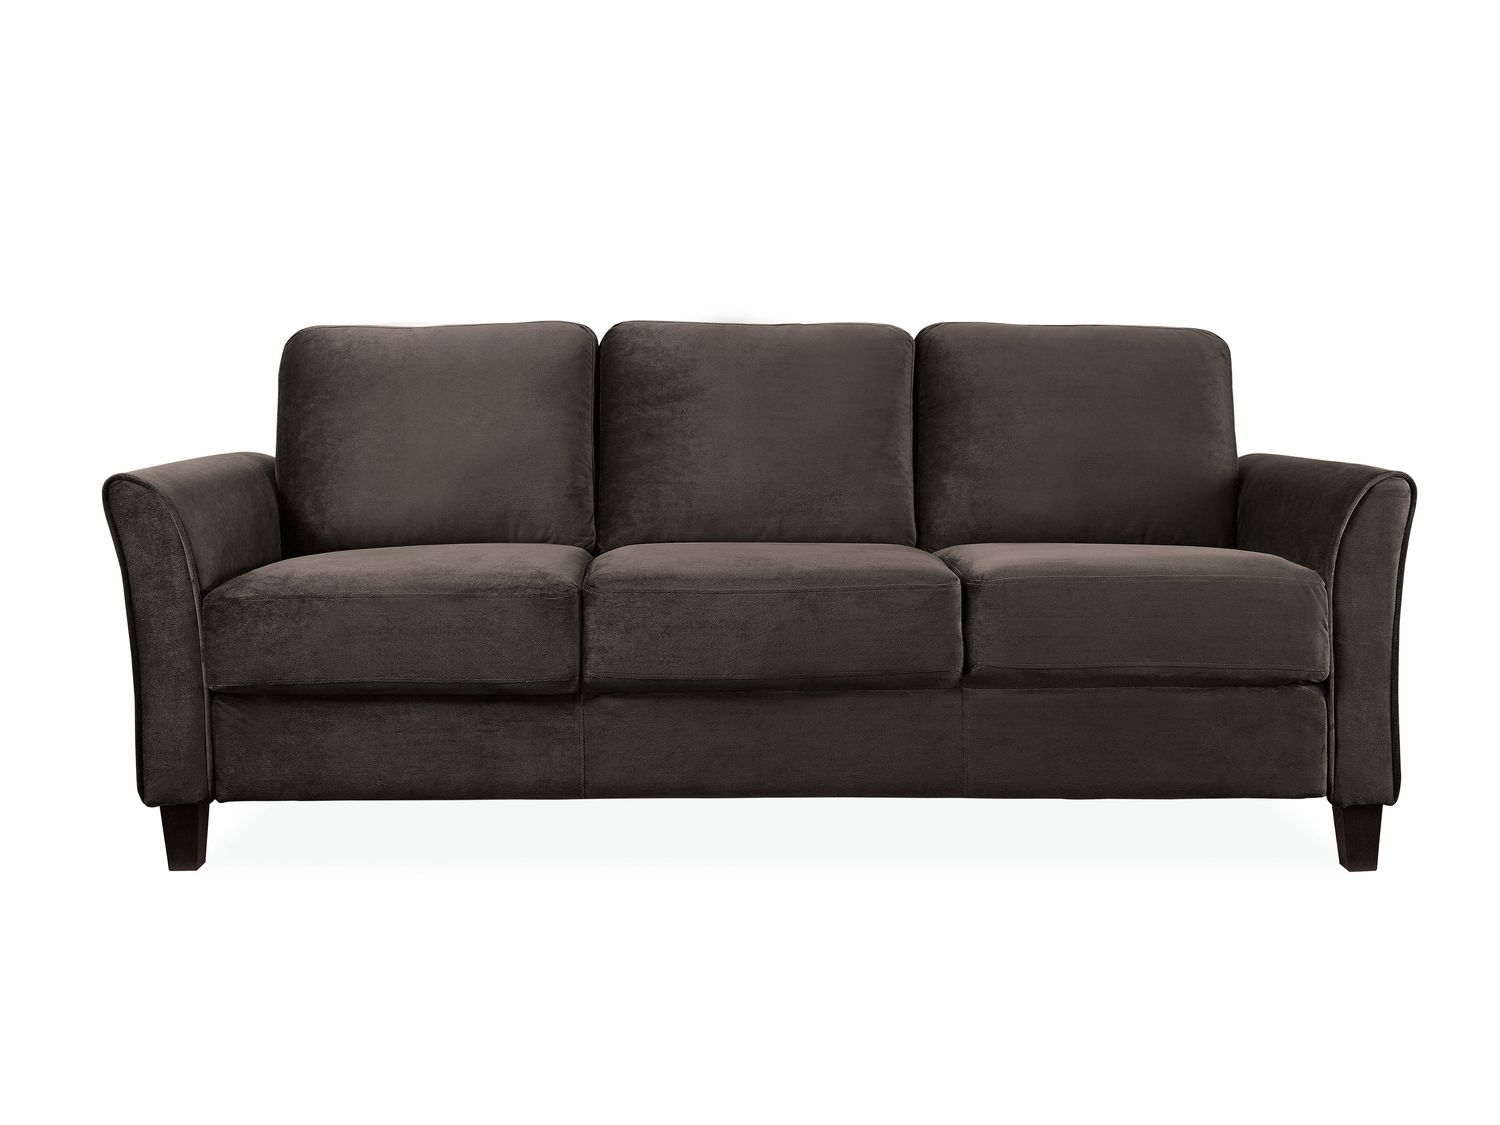 rc sofa cheap sofas brilliant chaise flanigan living raymour teal back large couches ikea sectio together outlet incredible huge sleeper sectional with room rest insizes u shaped couch sectionals under best then sets